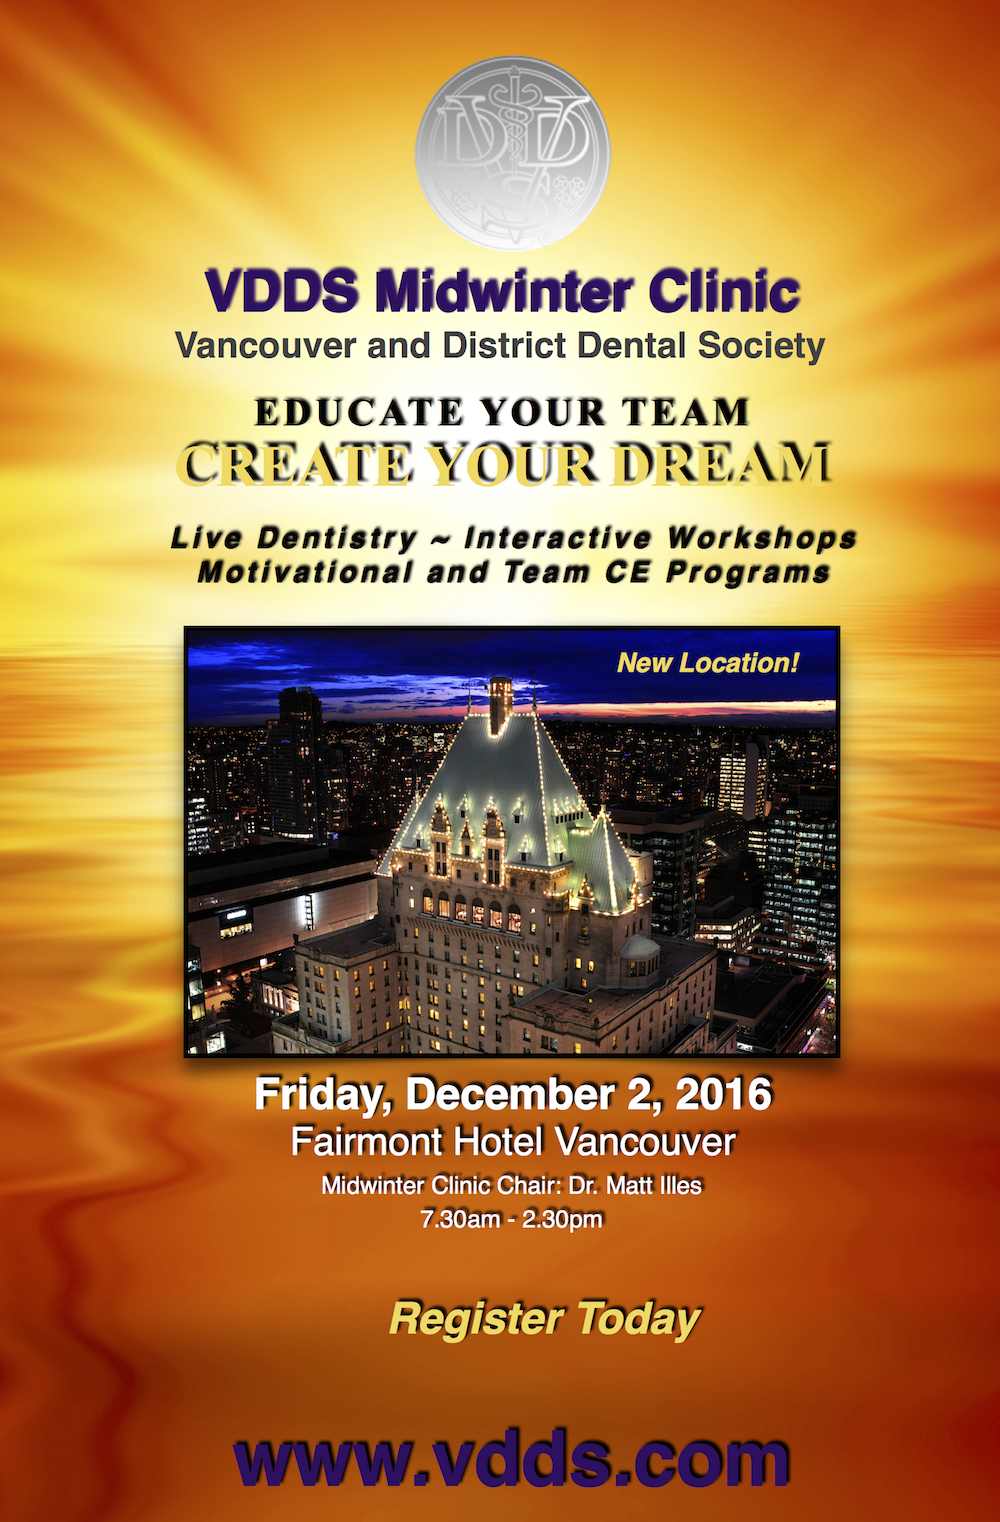 VDDS Lecture - Monday, November 7 at the Fairmont Pacific Rim!